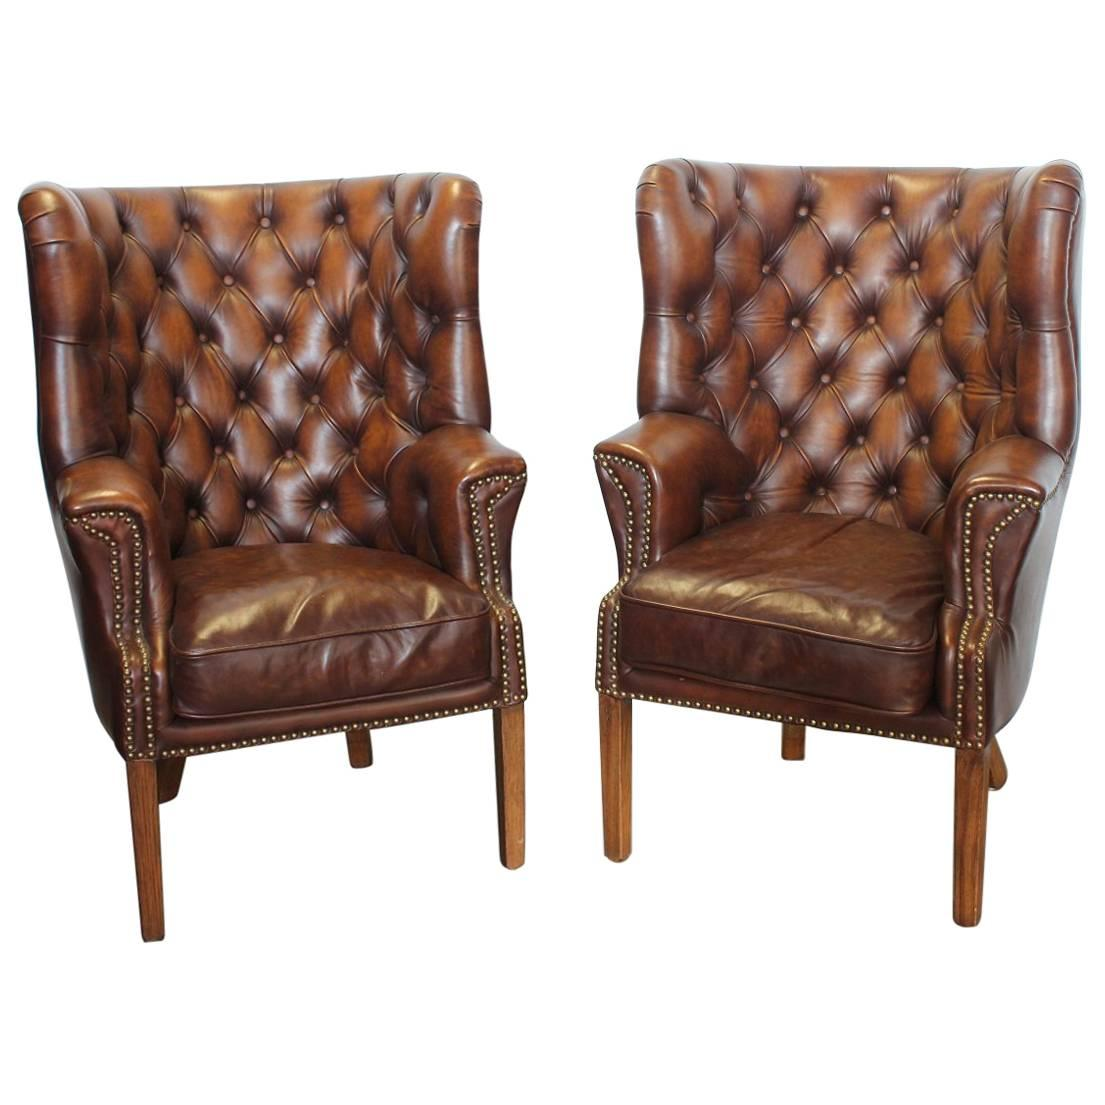 vintage tufted leather wing chairs